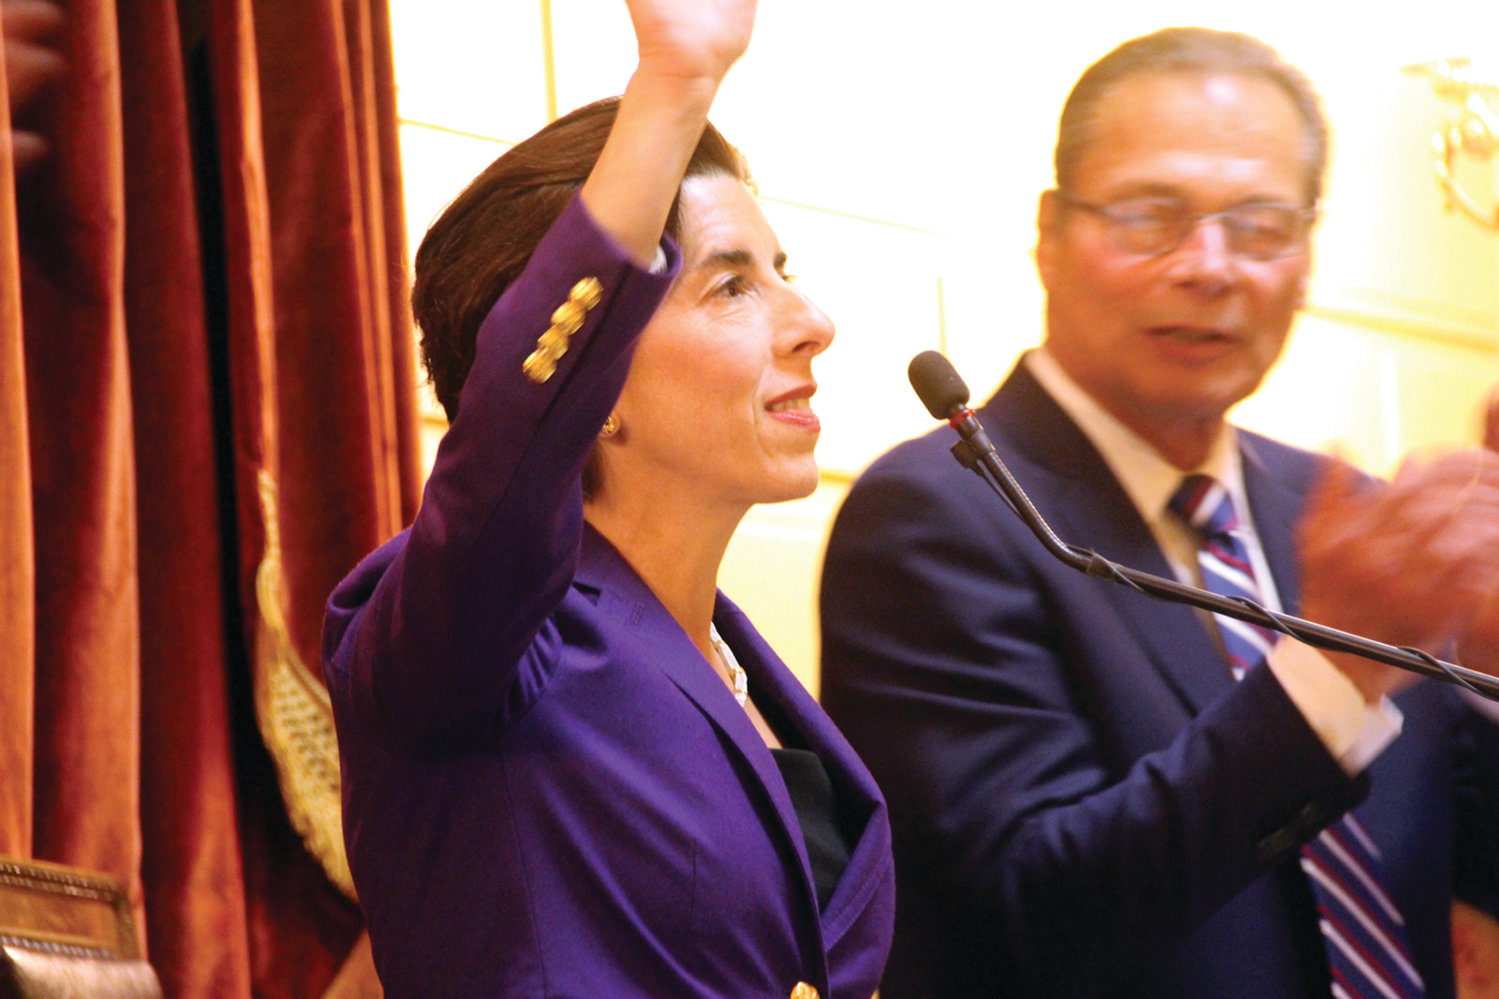 RECOGNIZING THE APPLAUSE: With Senate President Dominick Ruggerio at her side, Gov. Gina Raimondo waves to assembled legislators, state officials and a full gallery of spectators before speaking Tuesday.